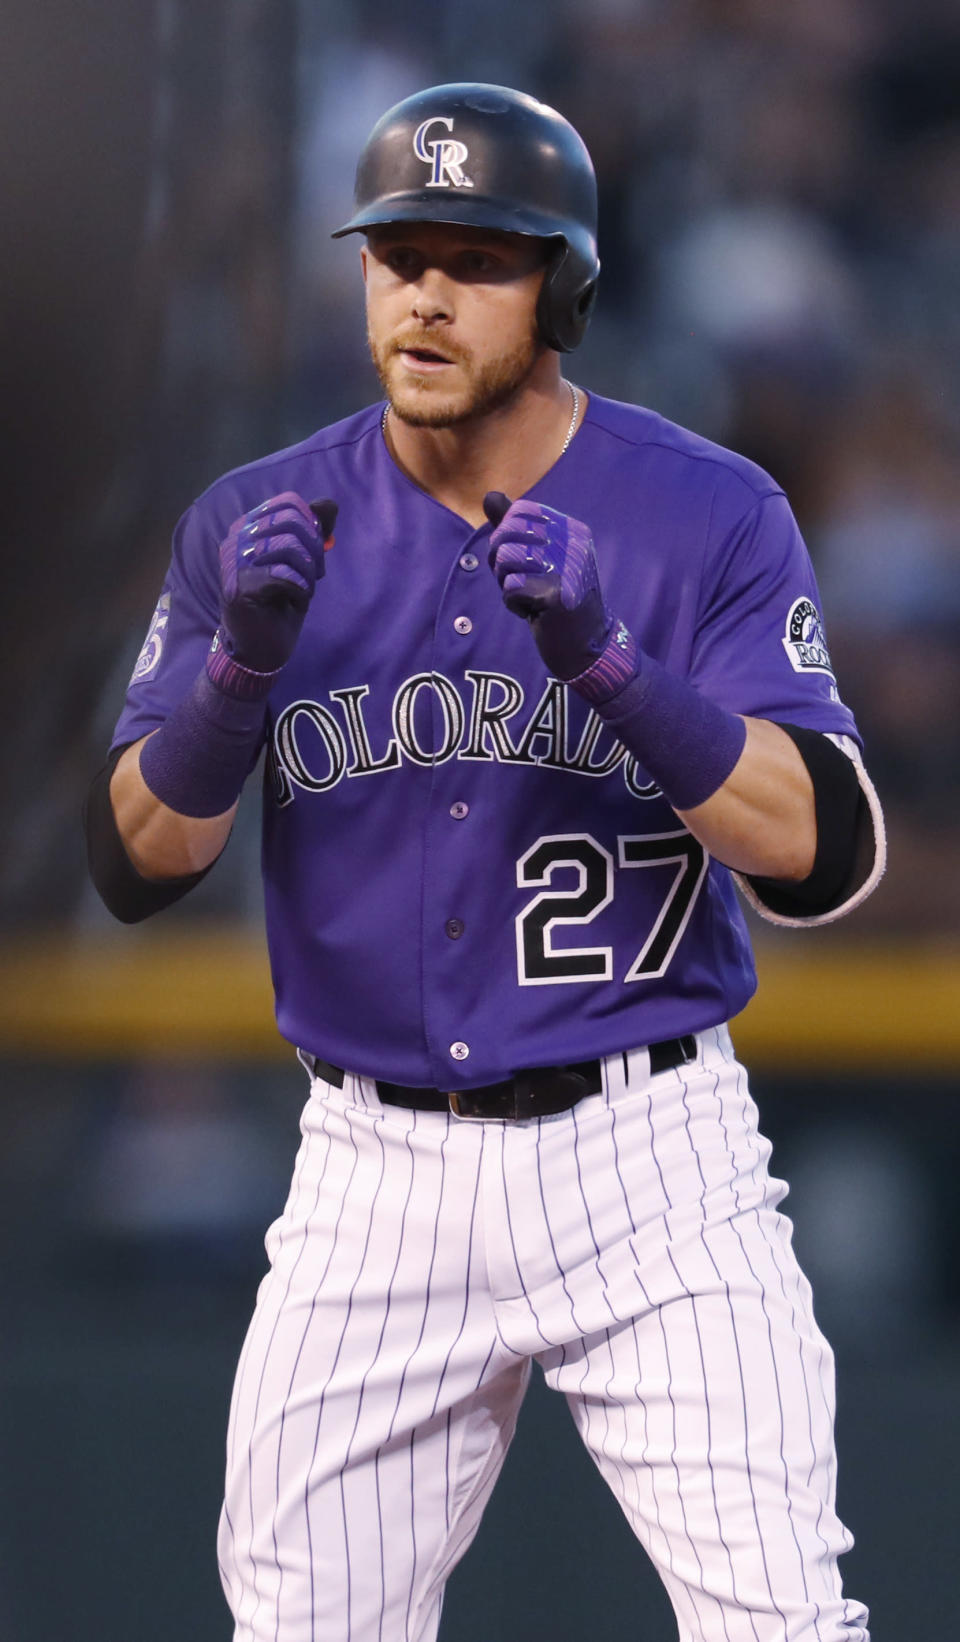 Colorado Rockies' Trevor Story reacts after his RBI-double off Arizona Diamondbacks starting pitcher Zack Greinke in the first inning of a baseball game Tuesday, Sept. 11, 2018, in Denver. (AP Photo/David Zalubowski)